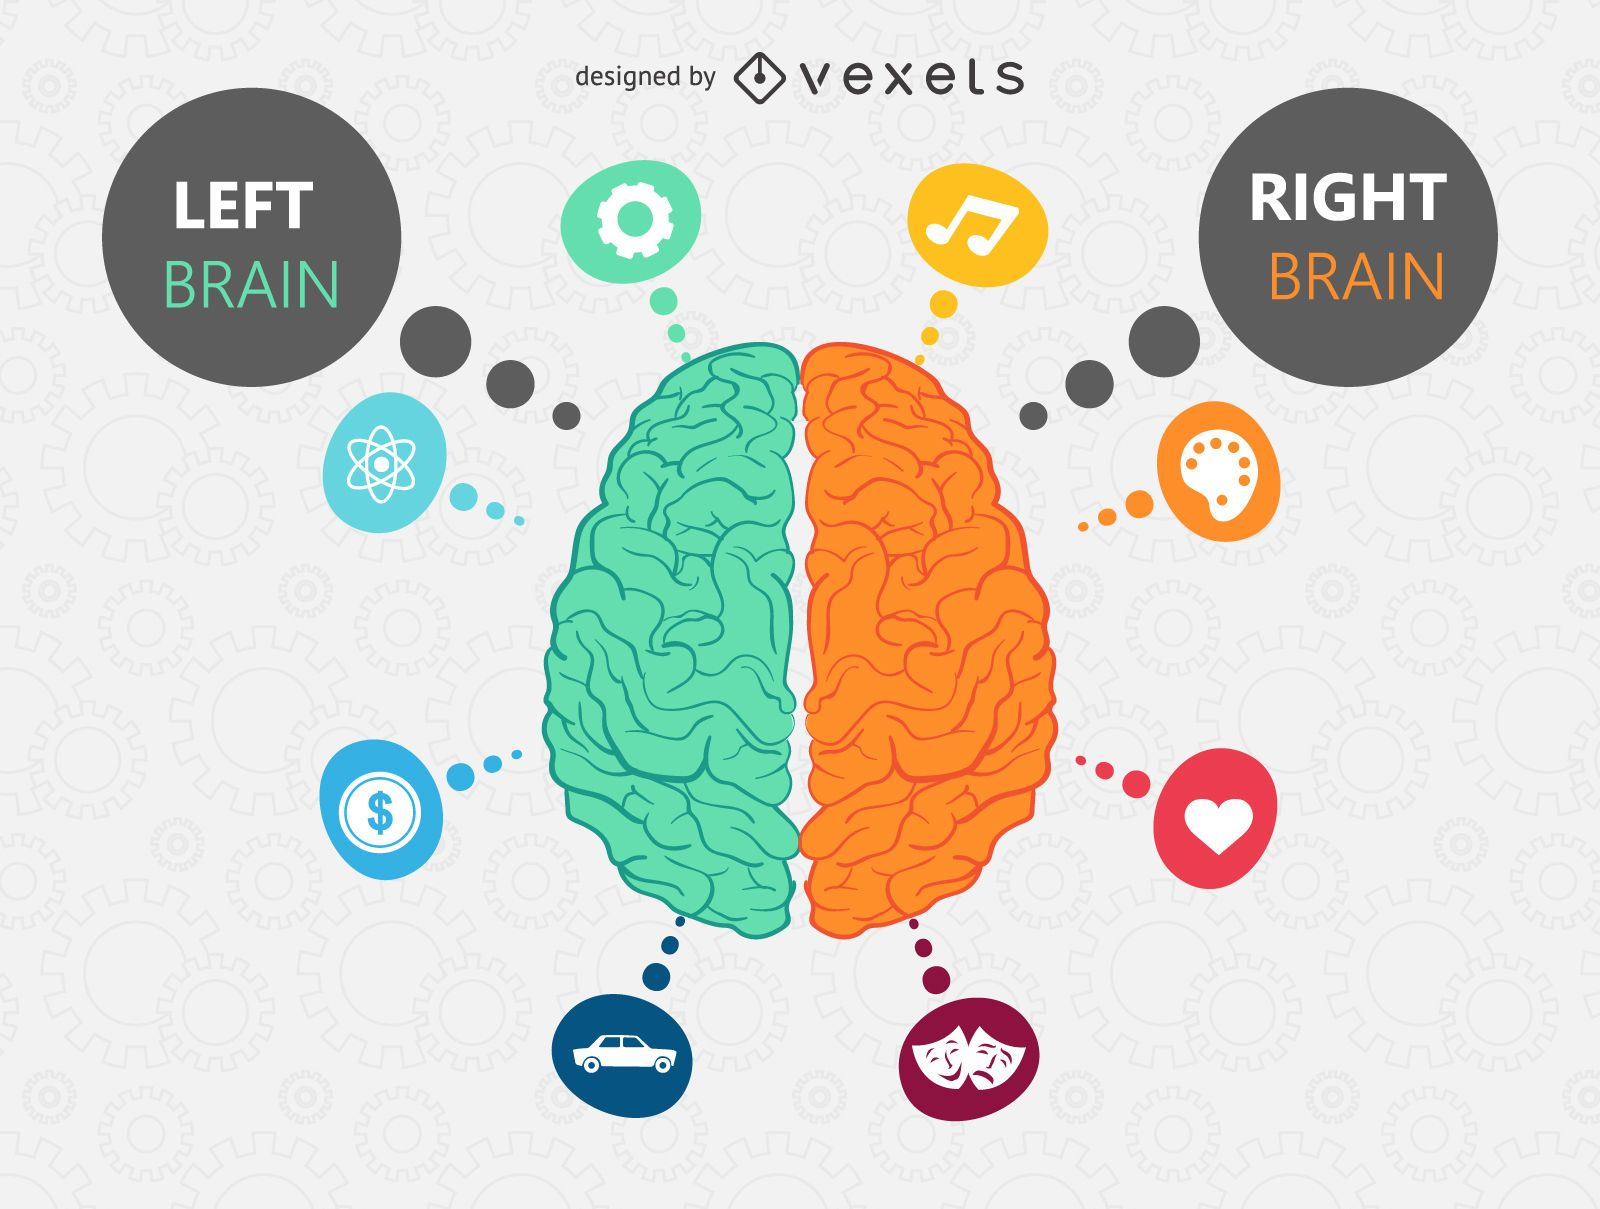 Brain illustration with icons